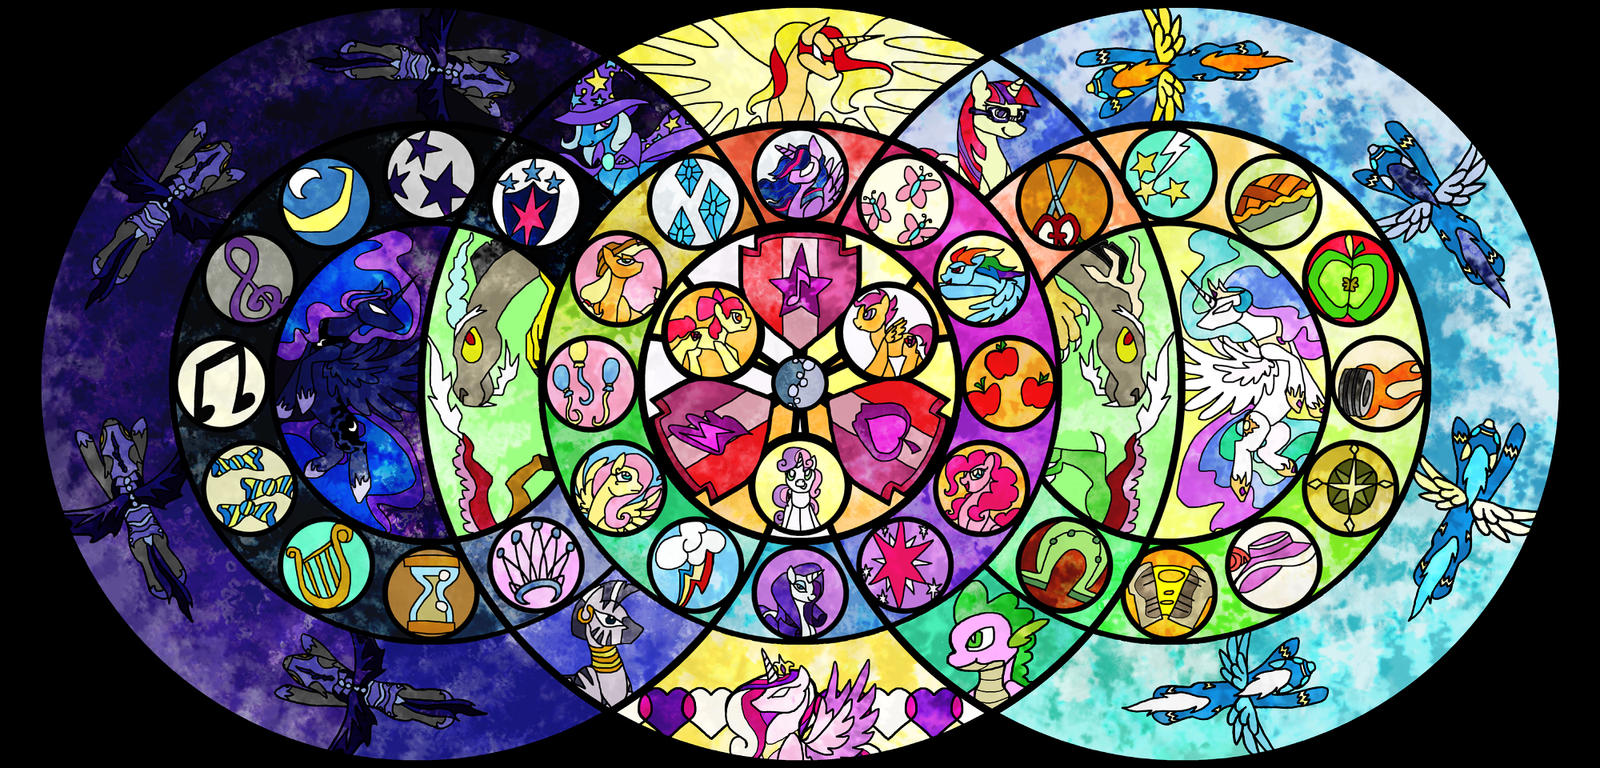 Stained Glass Cutie Mark Crusaders with Mane Cast by Angel-Pup